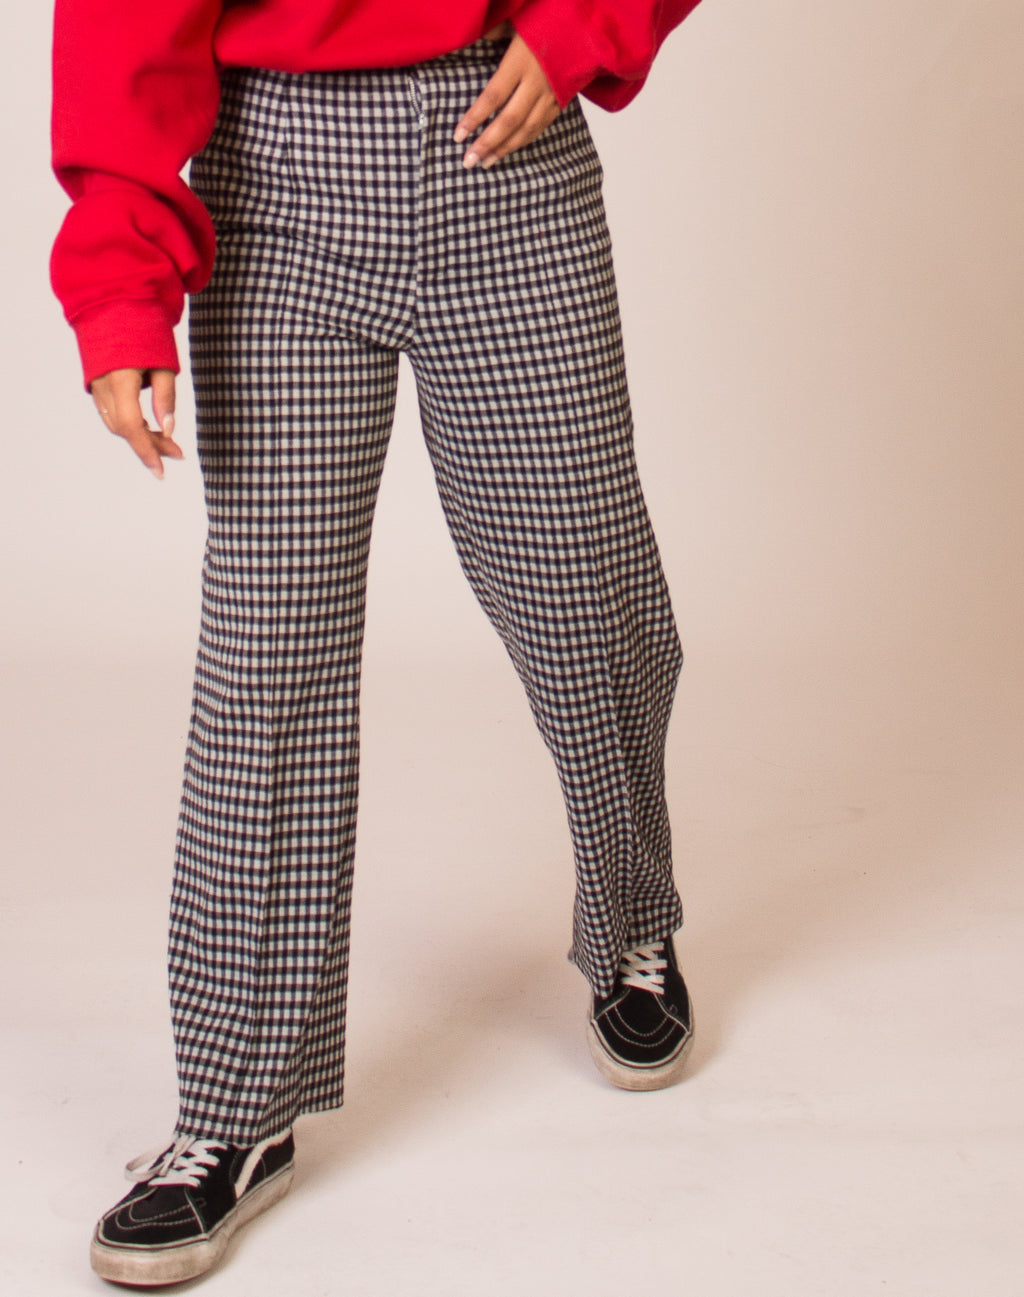 GINGHAM BLACK AND WHITE TROUSERS